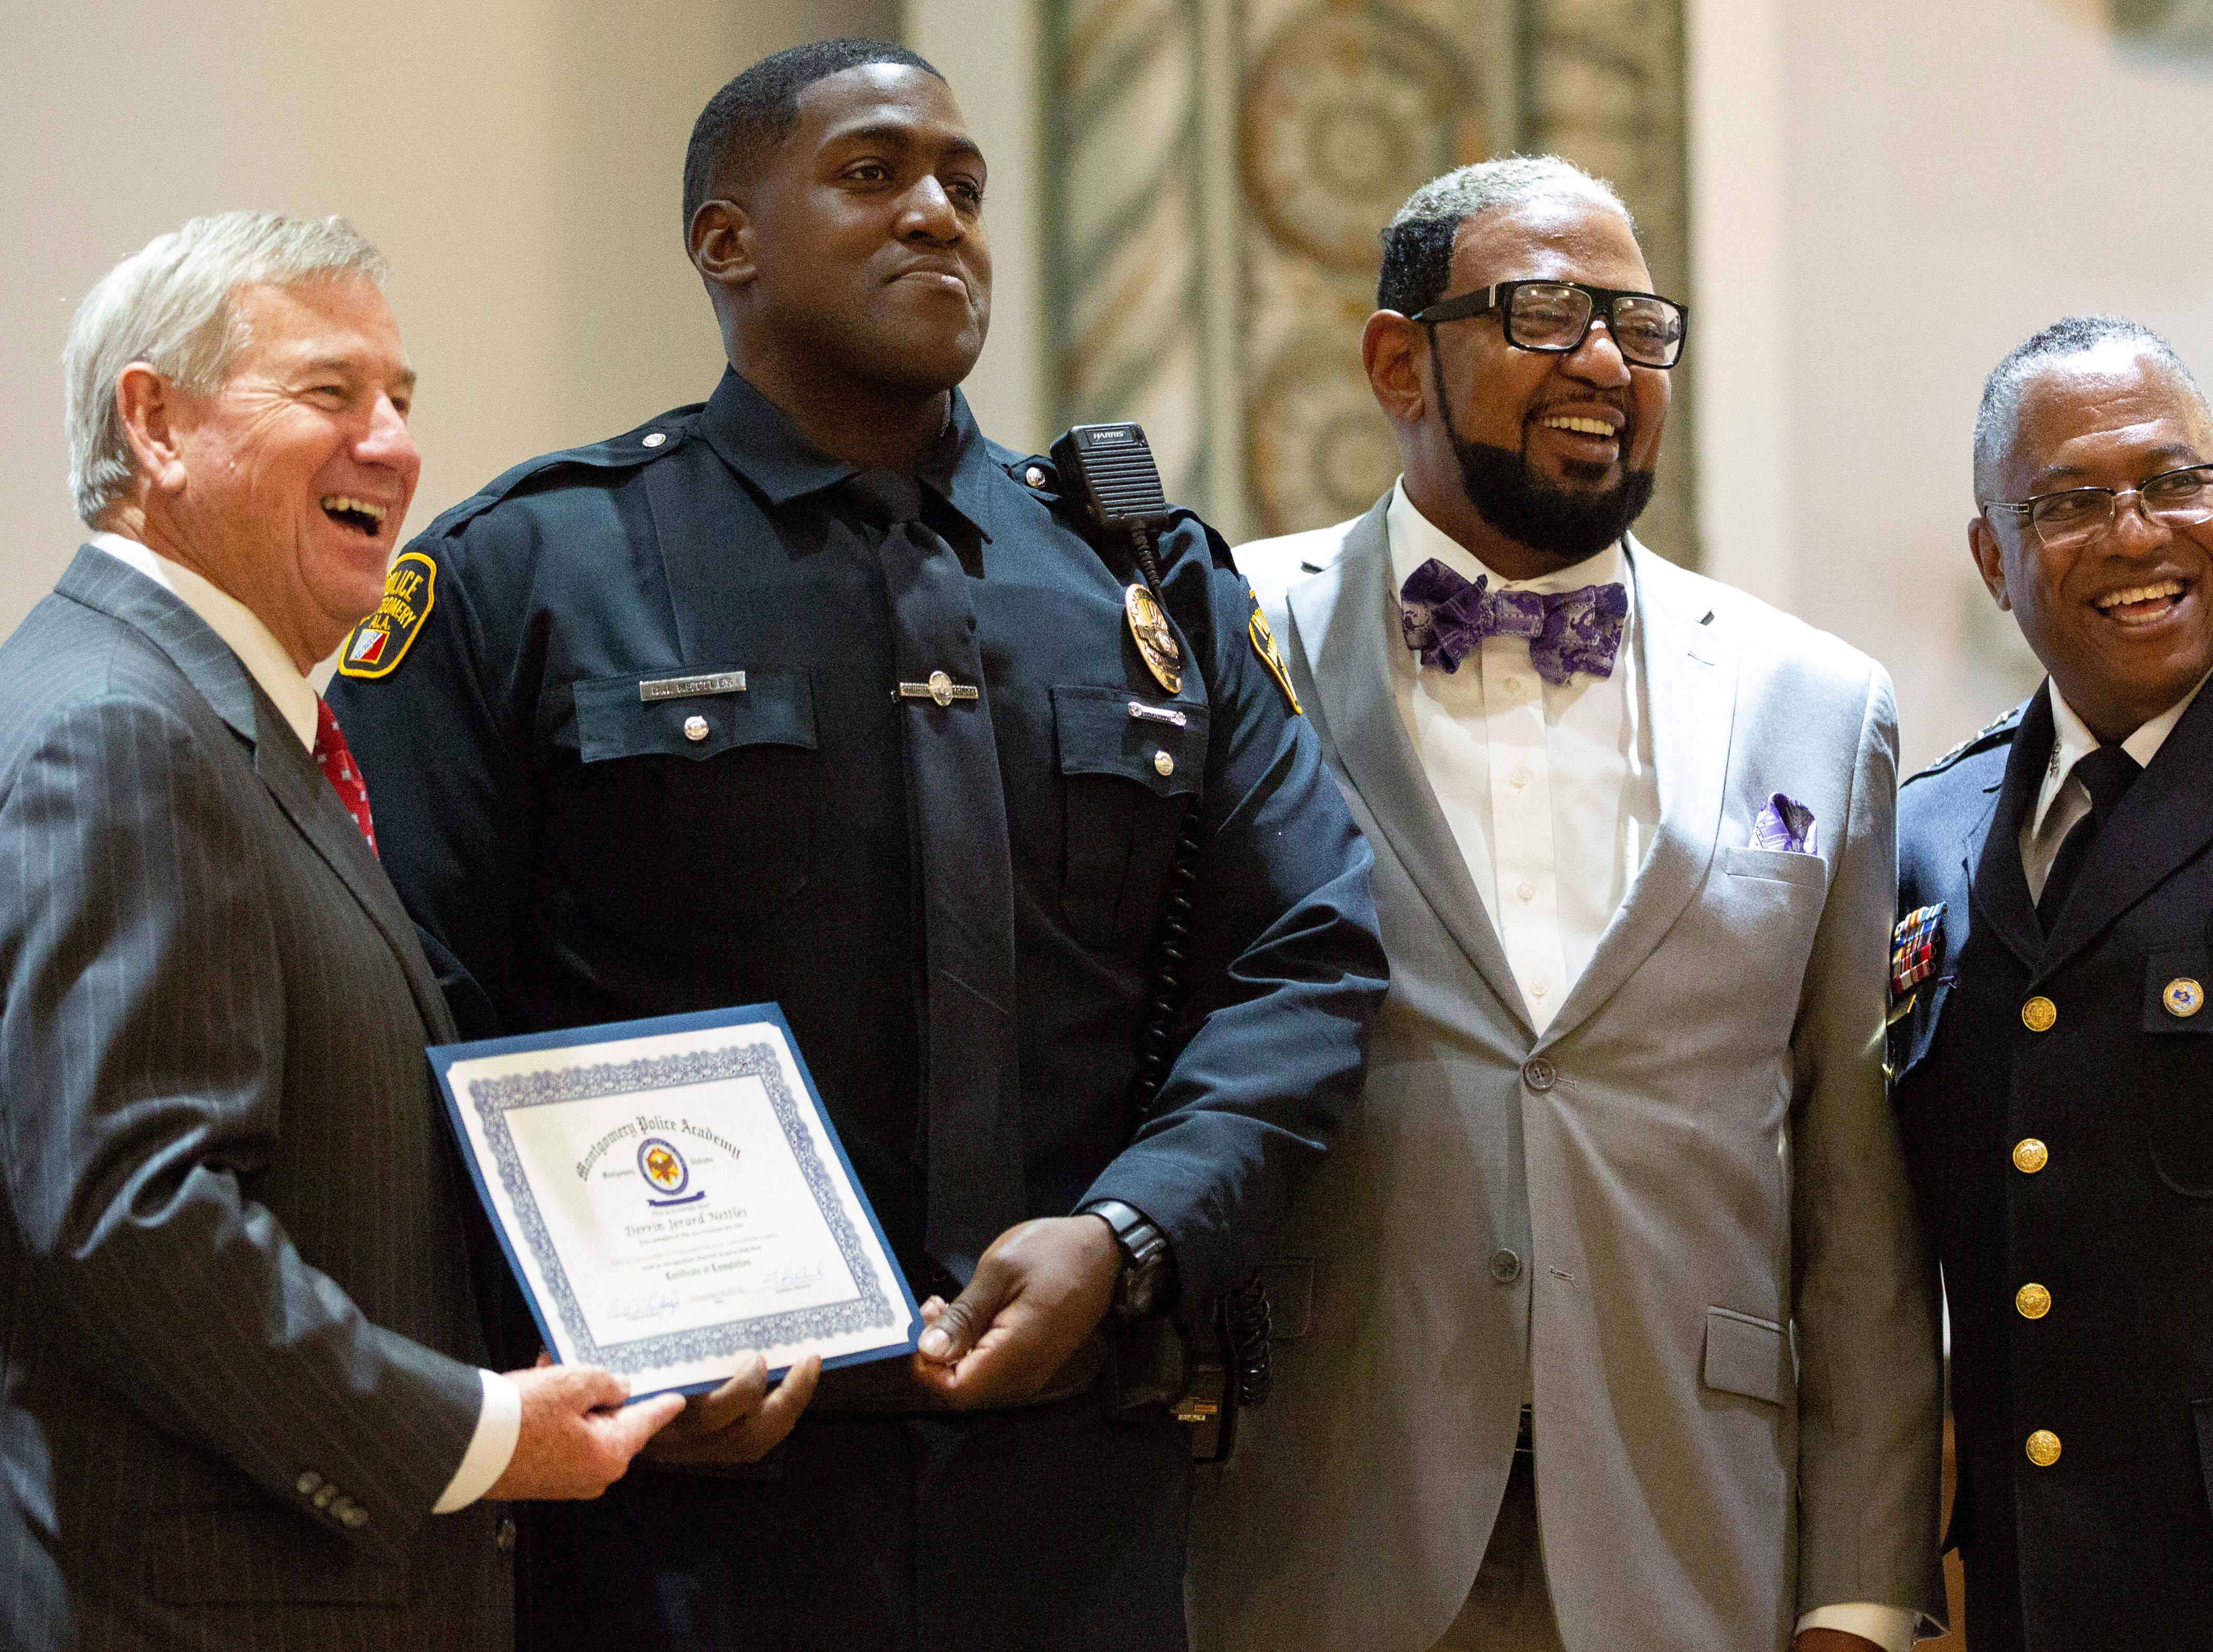 Montgomery police officer Derrin Nettles poses for a photo after graduating from the academy.